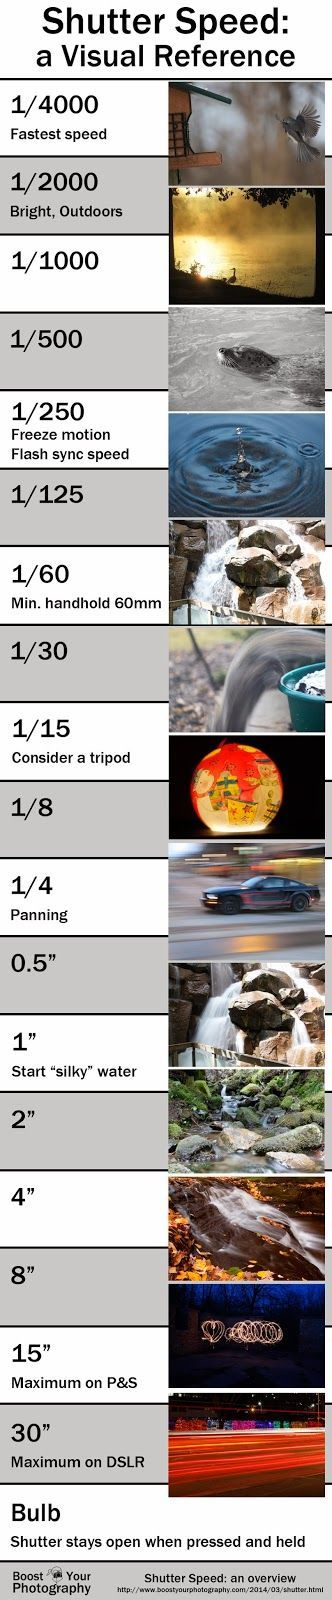 Shutter Speed: an overview | Boost Your Photography #Photography